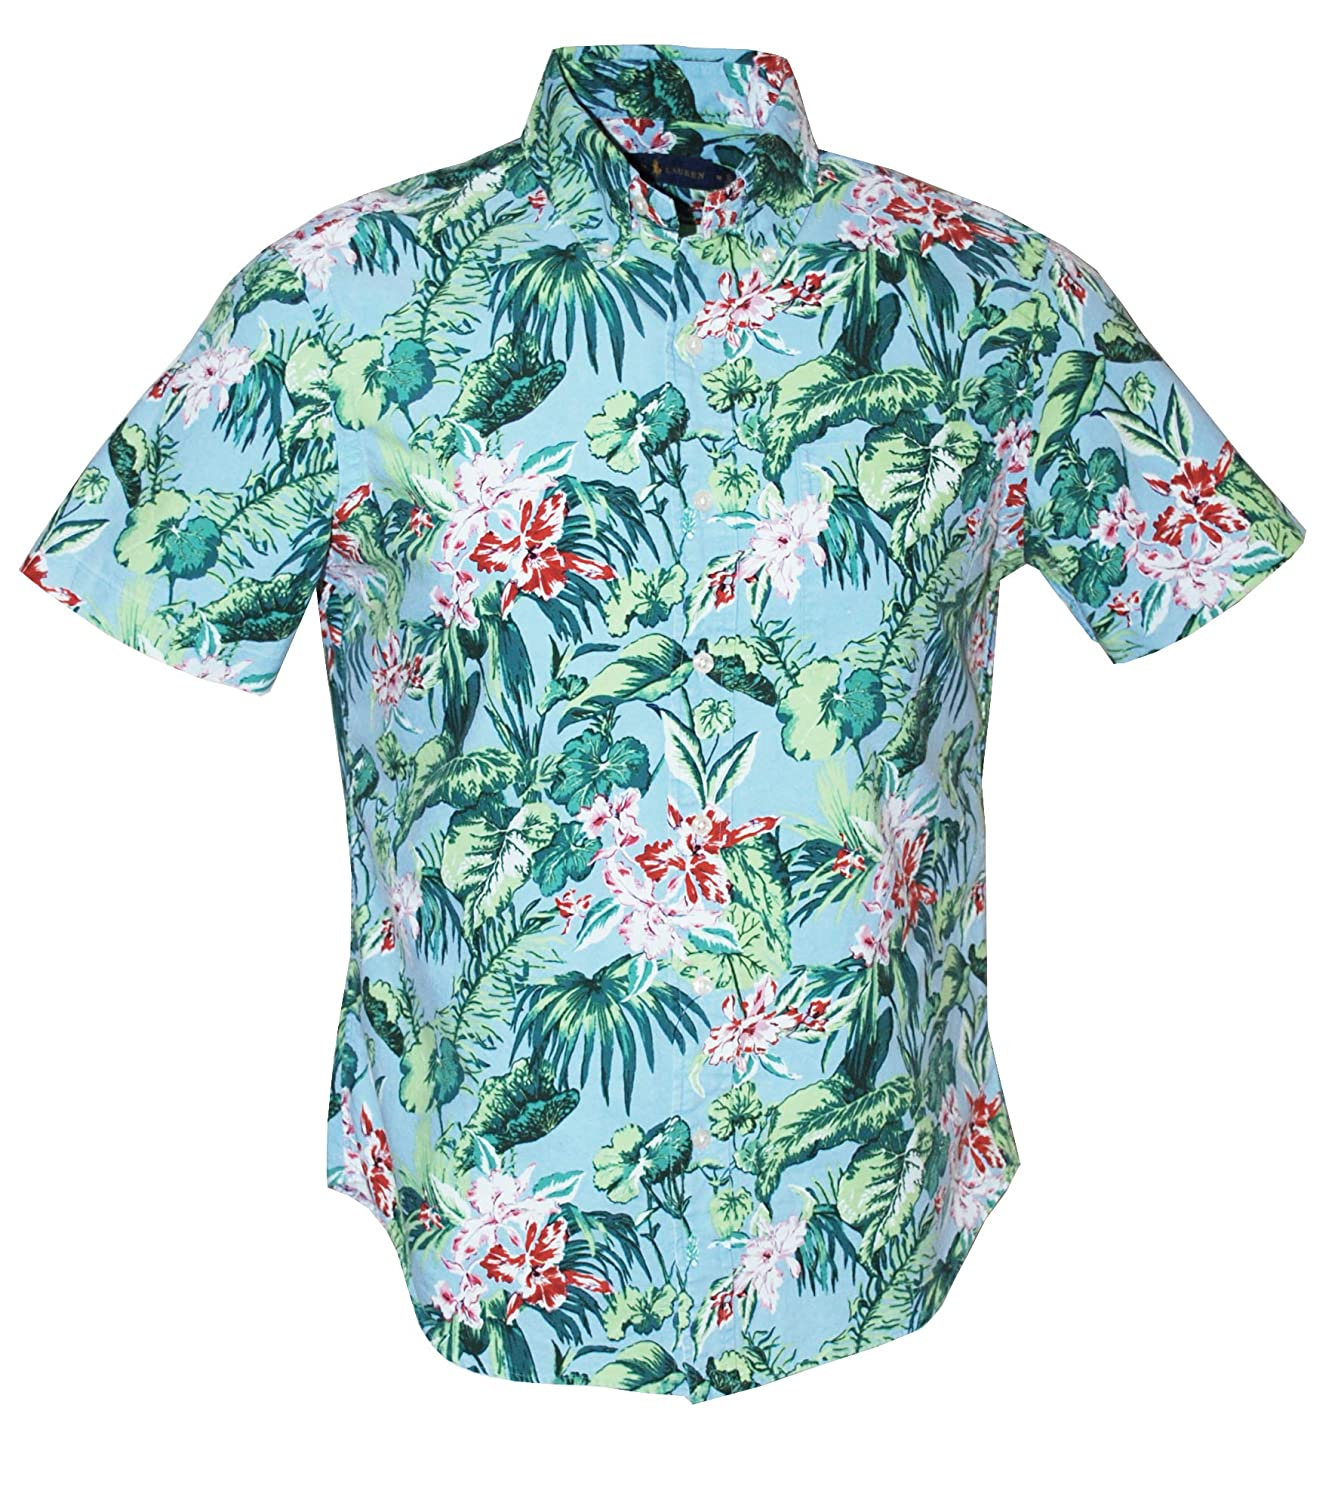 a341ae64 Polo Ralph Lauren Men's Classic Fit Hawaiian Print Shirt, Palm Floral at  Amazon Men's Clothing store: